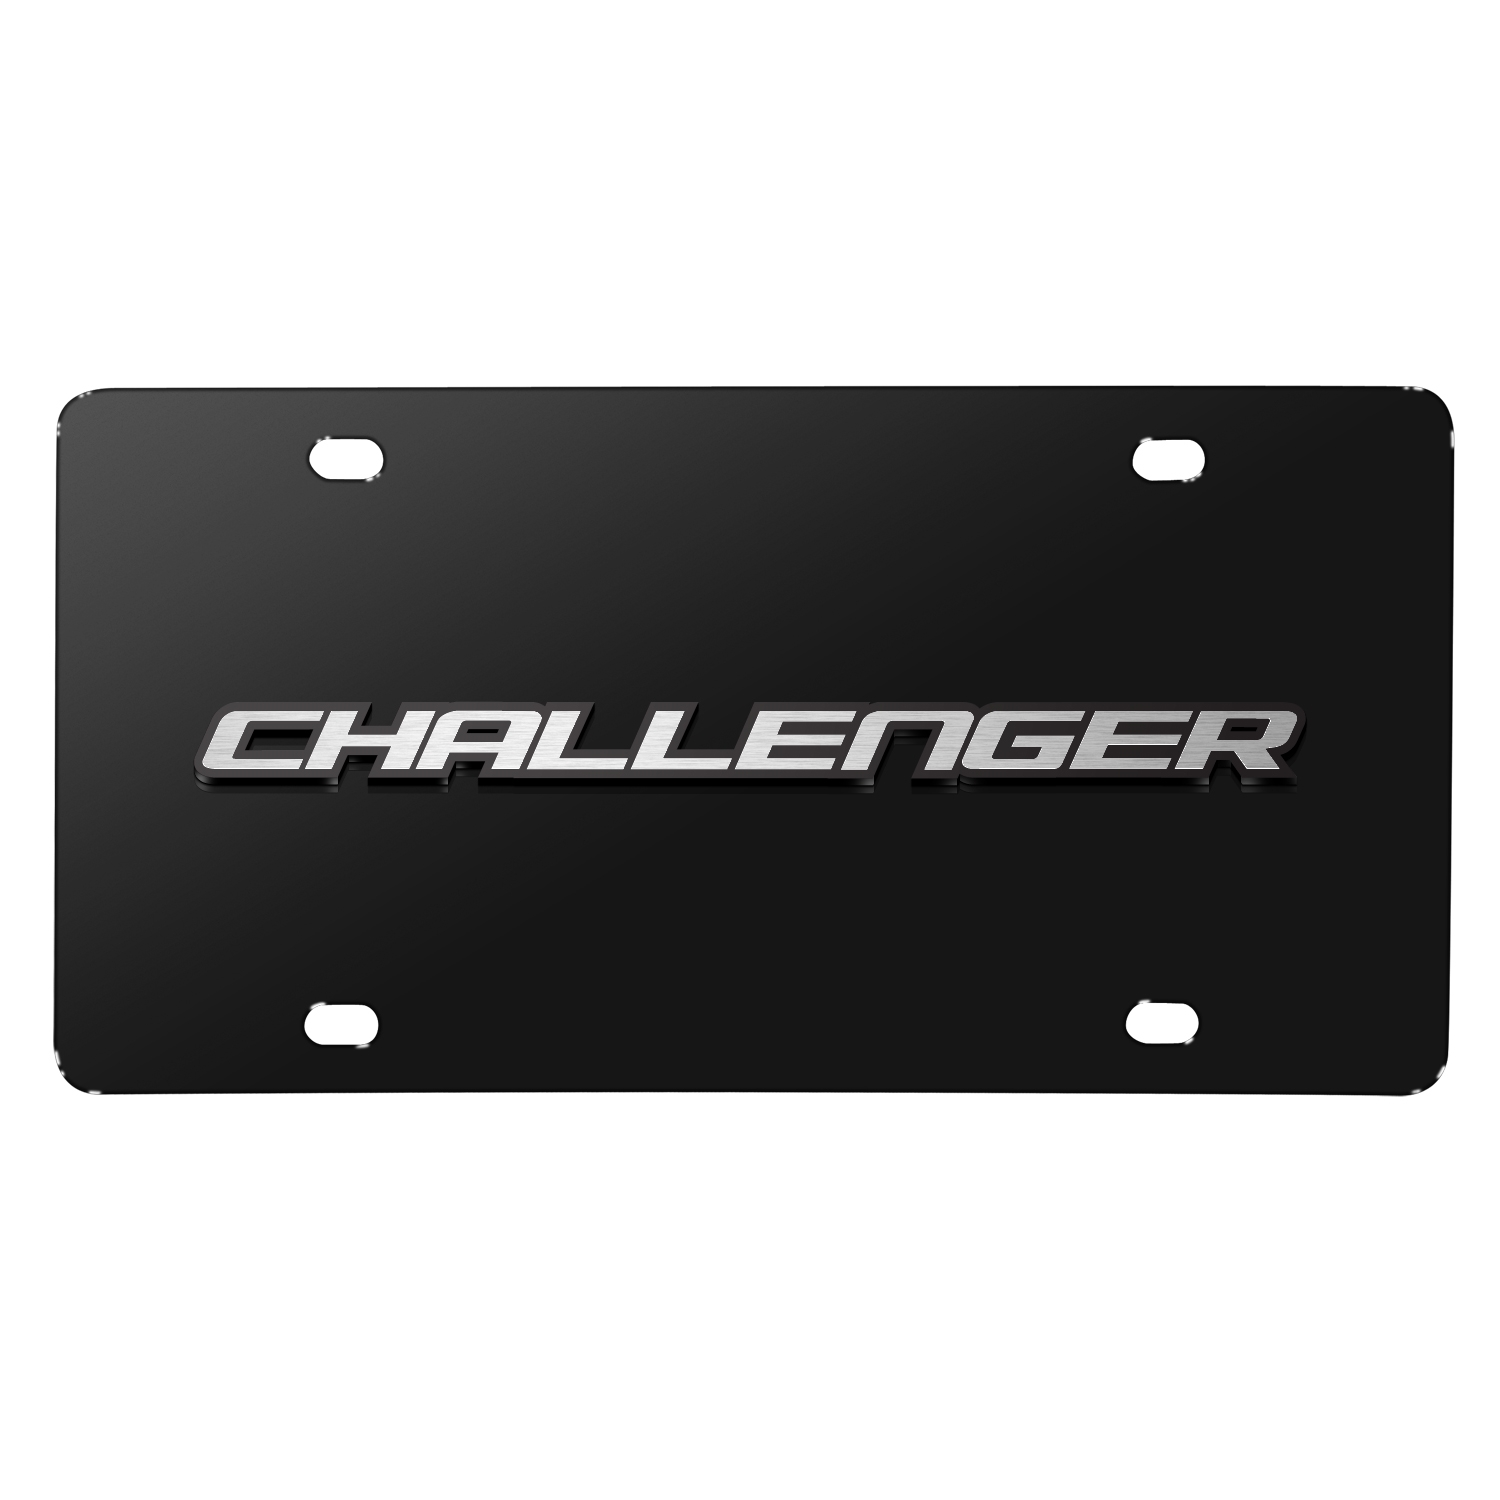 Dodge Challenger 3D Logo on Black Stainless Steel License Plate